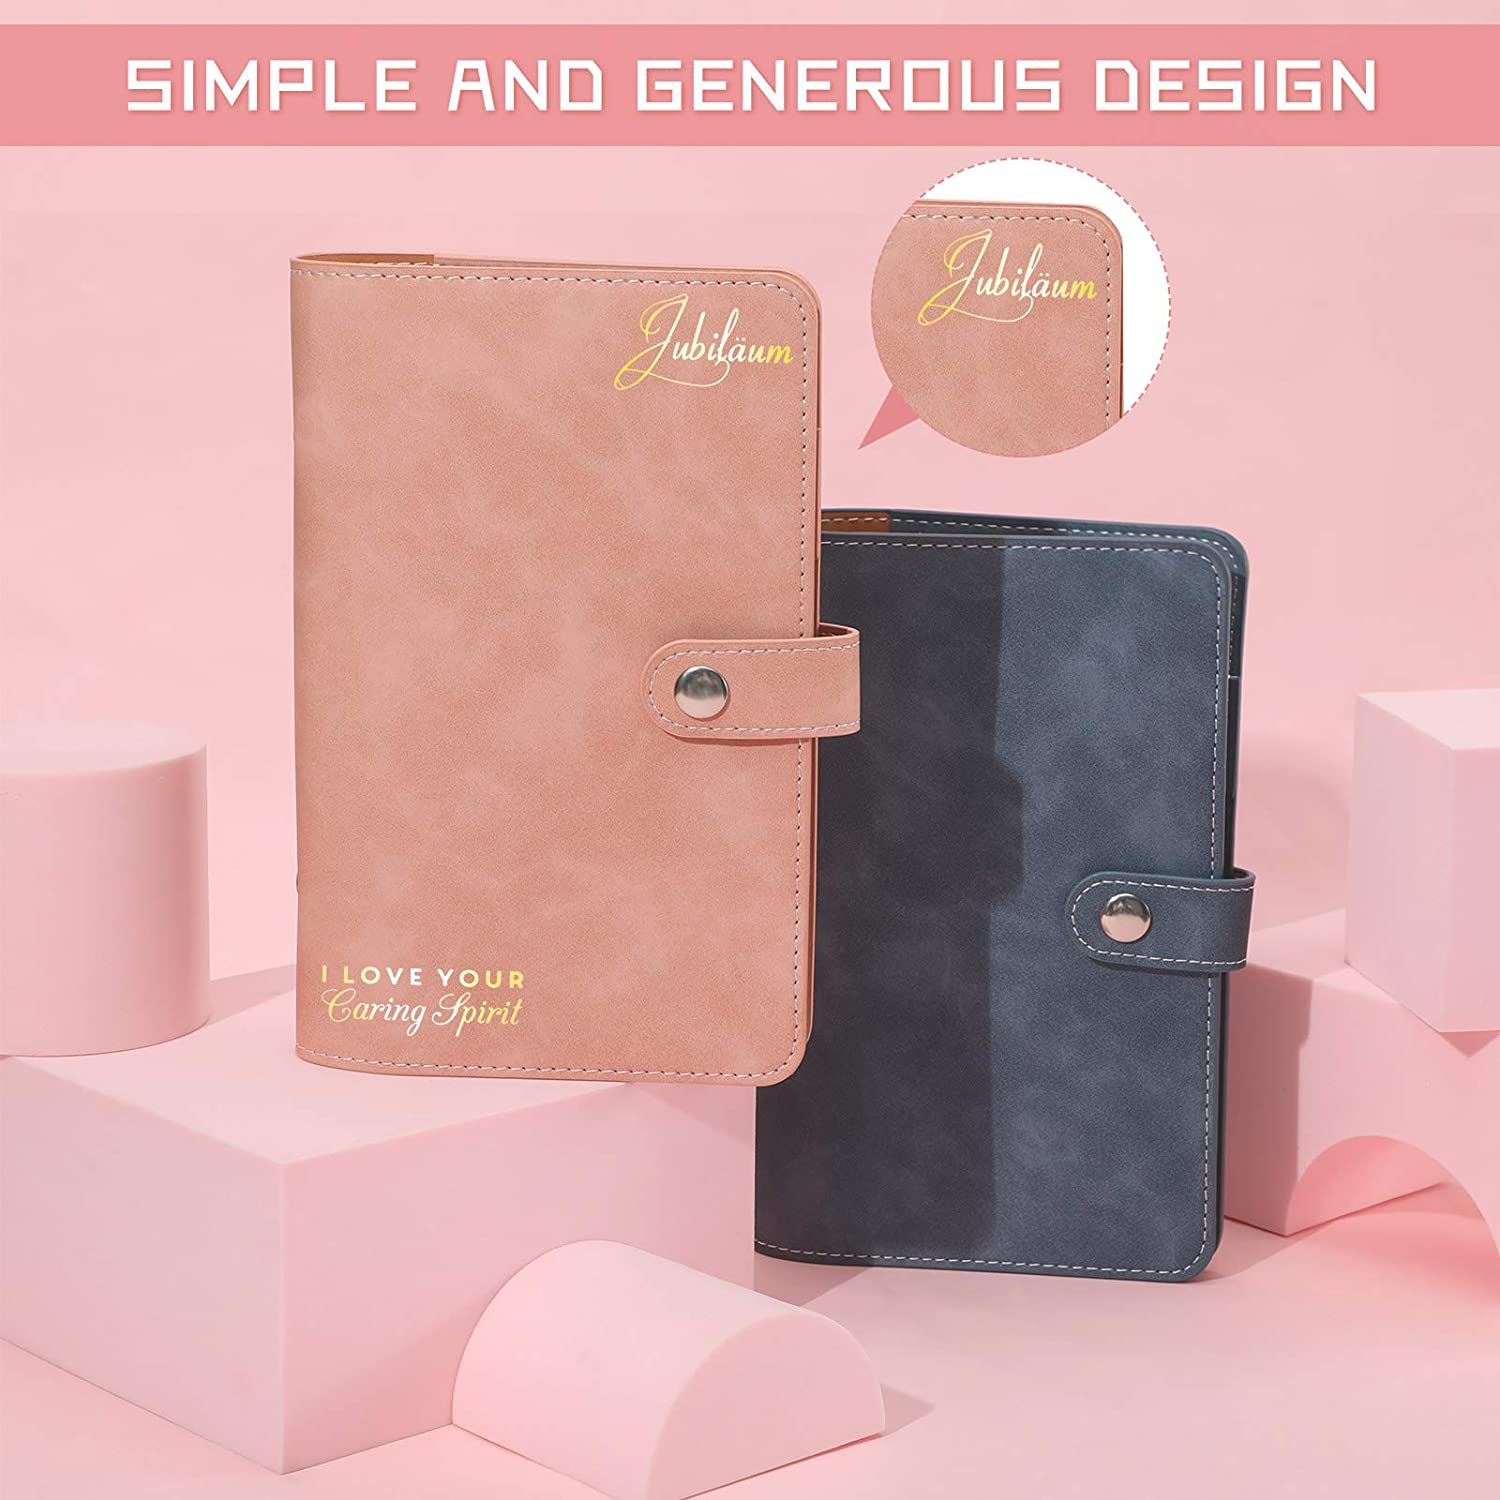 Blue, Pink 2 Pieces A6 PU Leather Notebook Binder Refillable 6 Ring Binder Cover for A6 Binder Pockets Filler Paper Personal Organizer Planner Binder with 2 Pieces DIY Gold Glitter Stickers